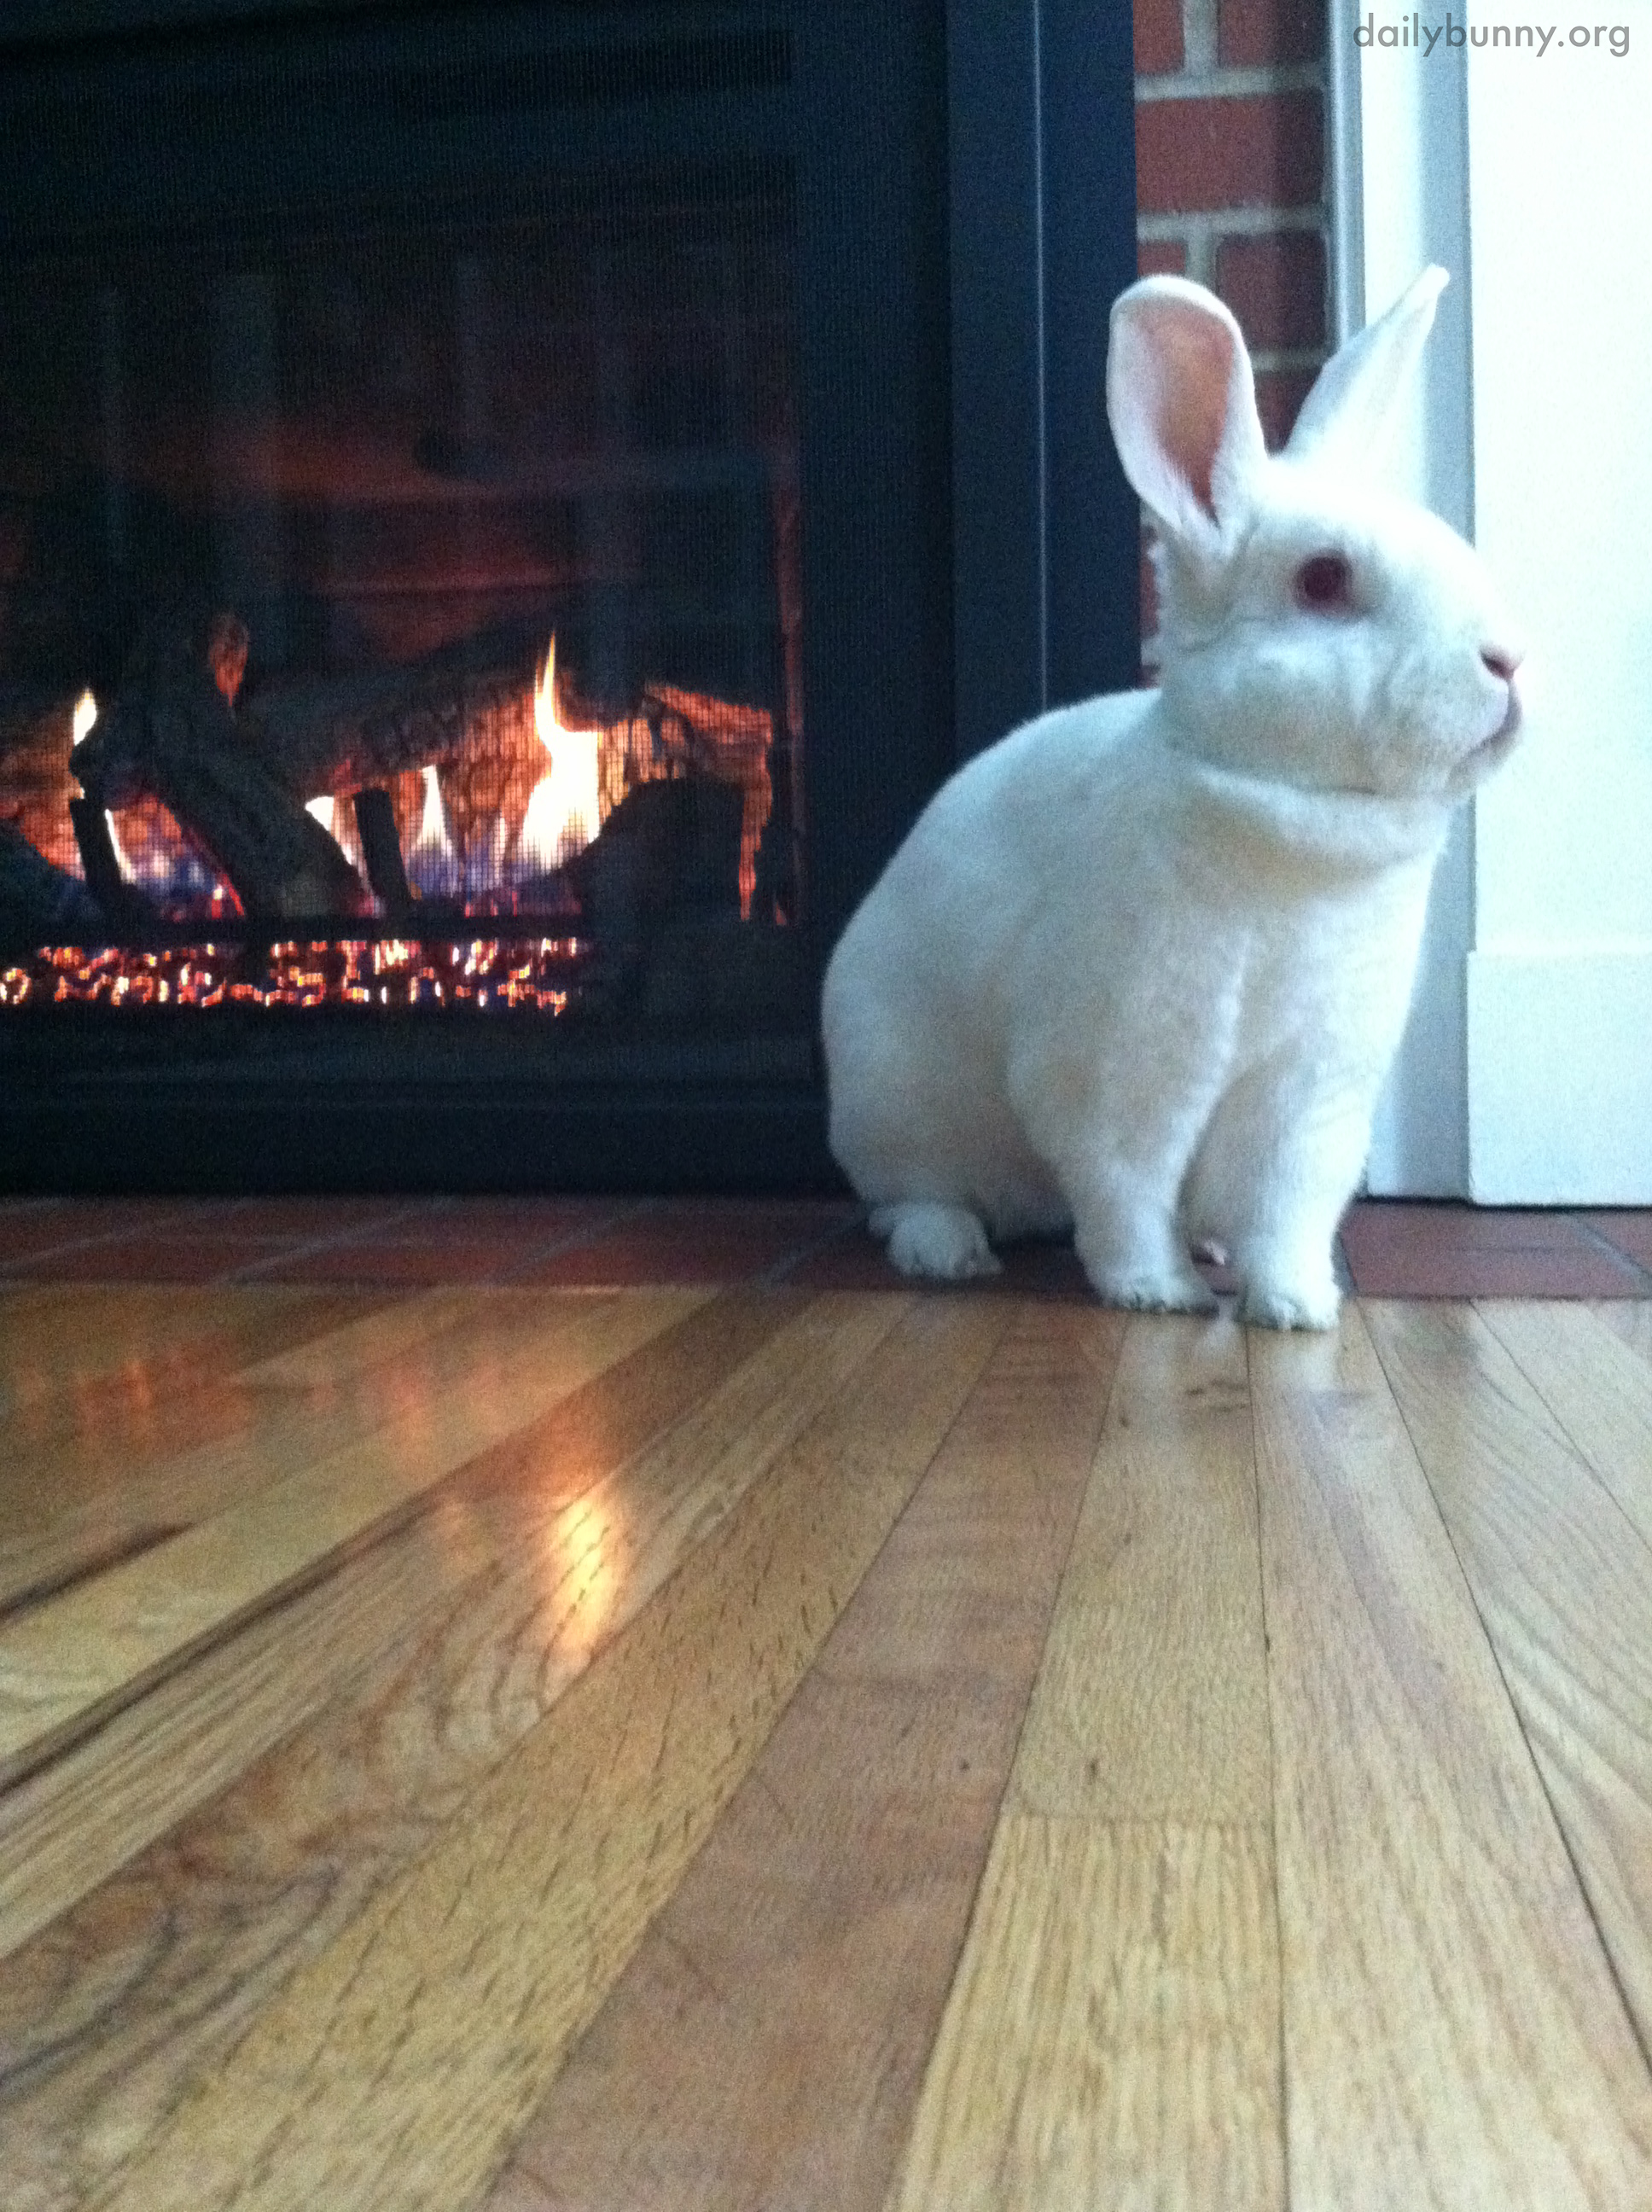 Bunny Warms His Bum by the Fire